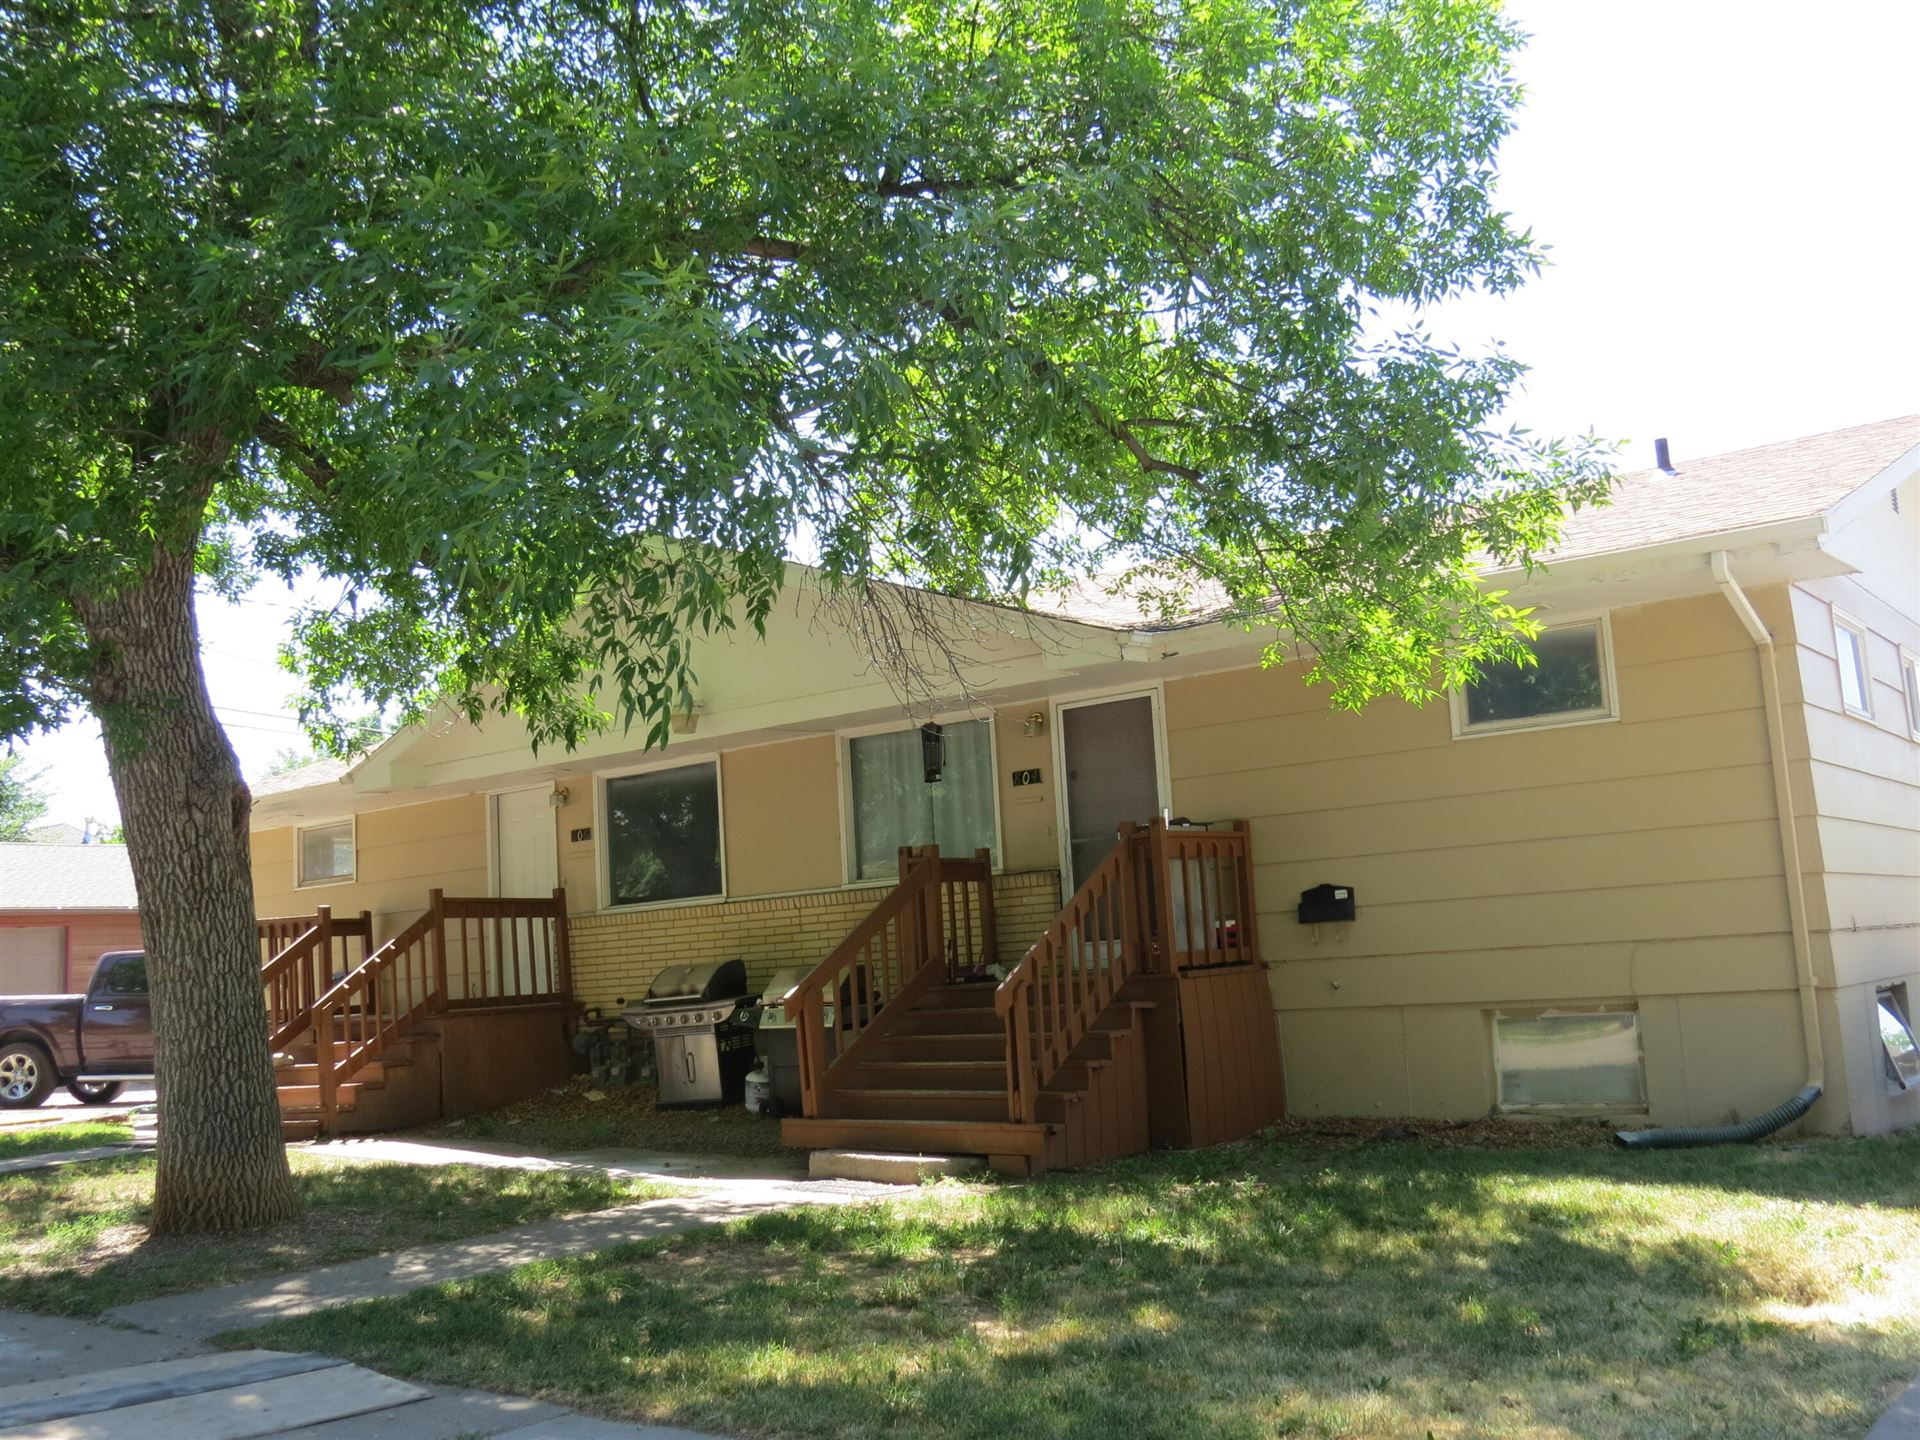 Photo of 804 12th Street South, Great Falls, MT 59405 (MLS # 22110482)